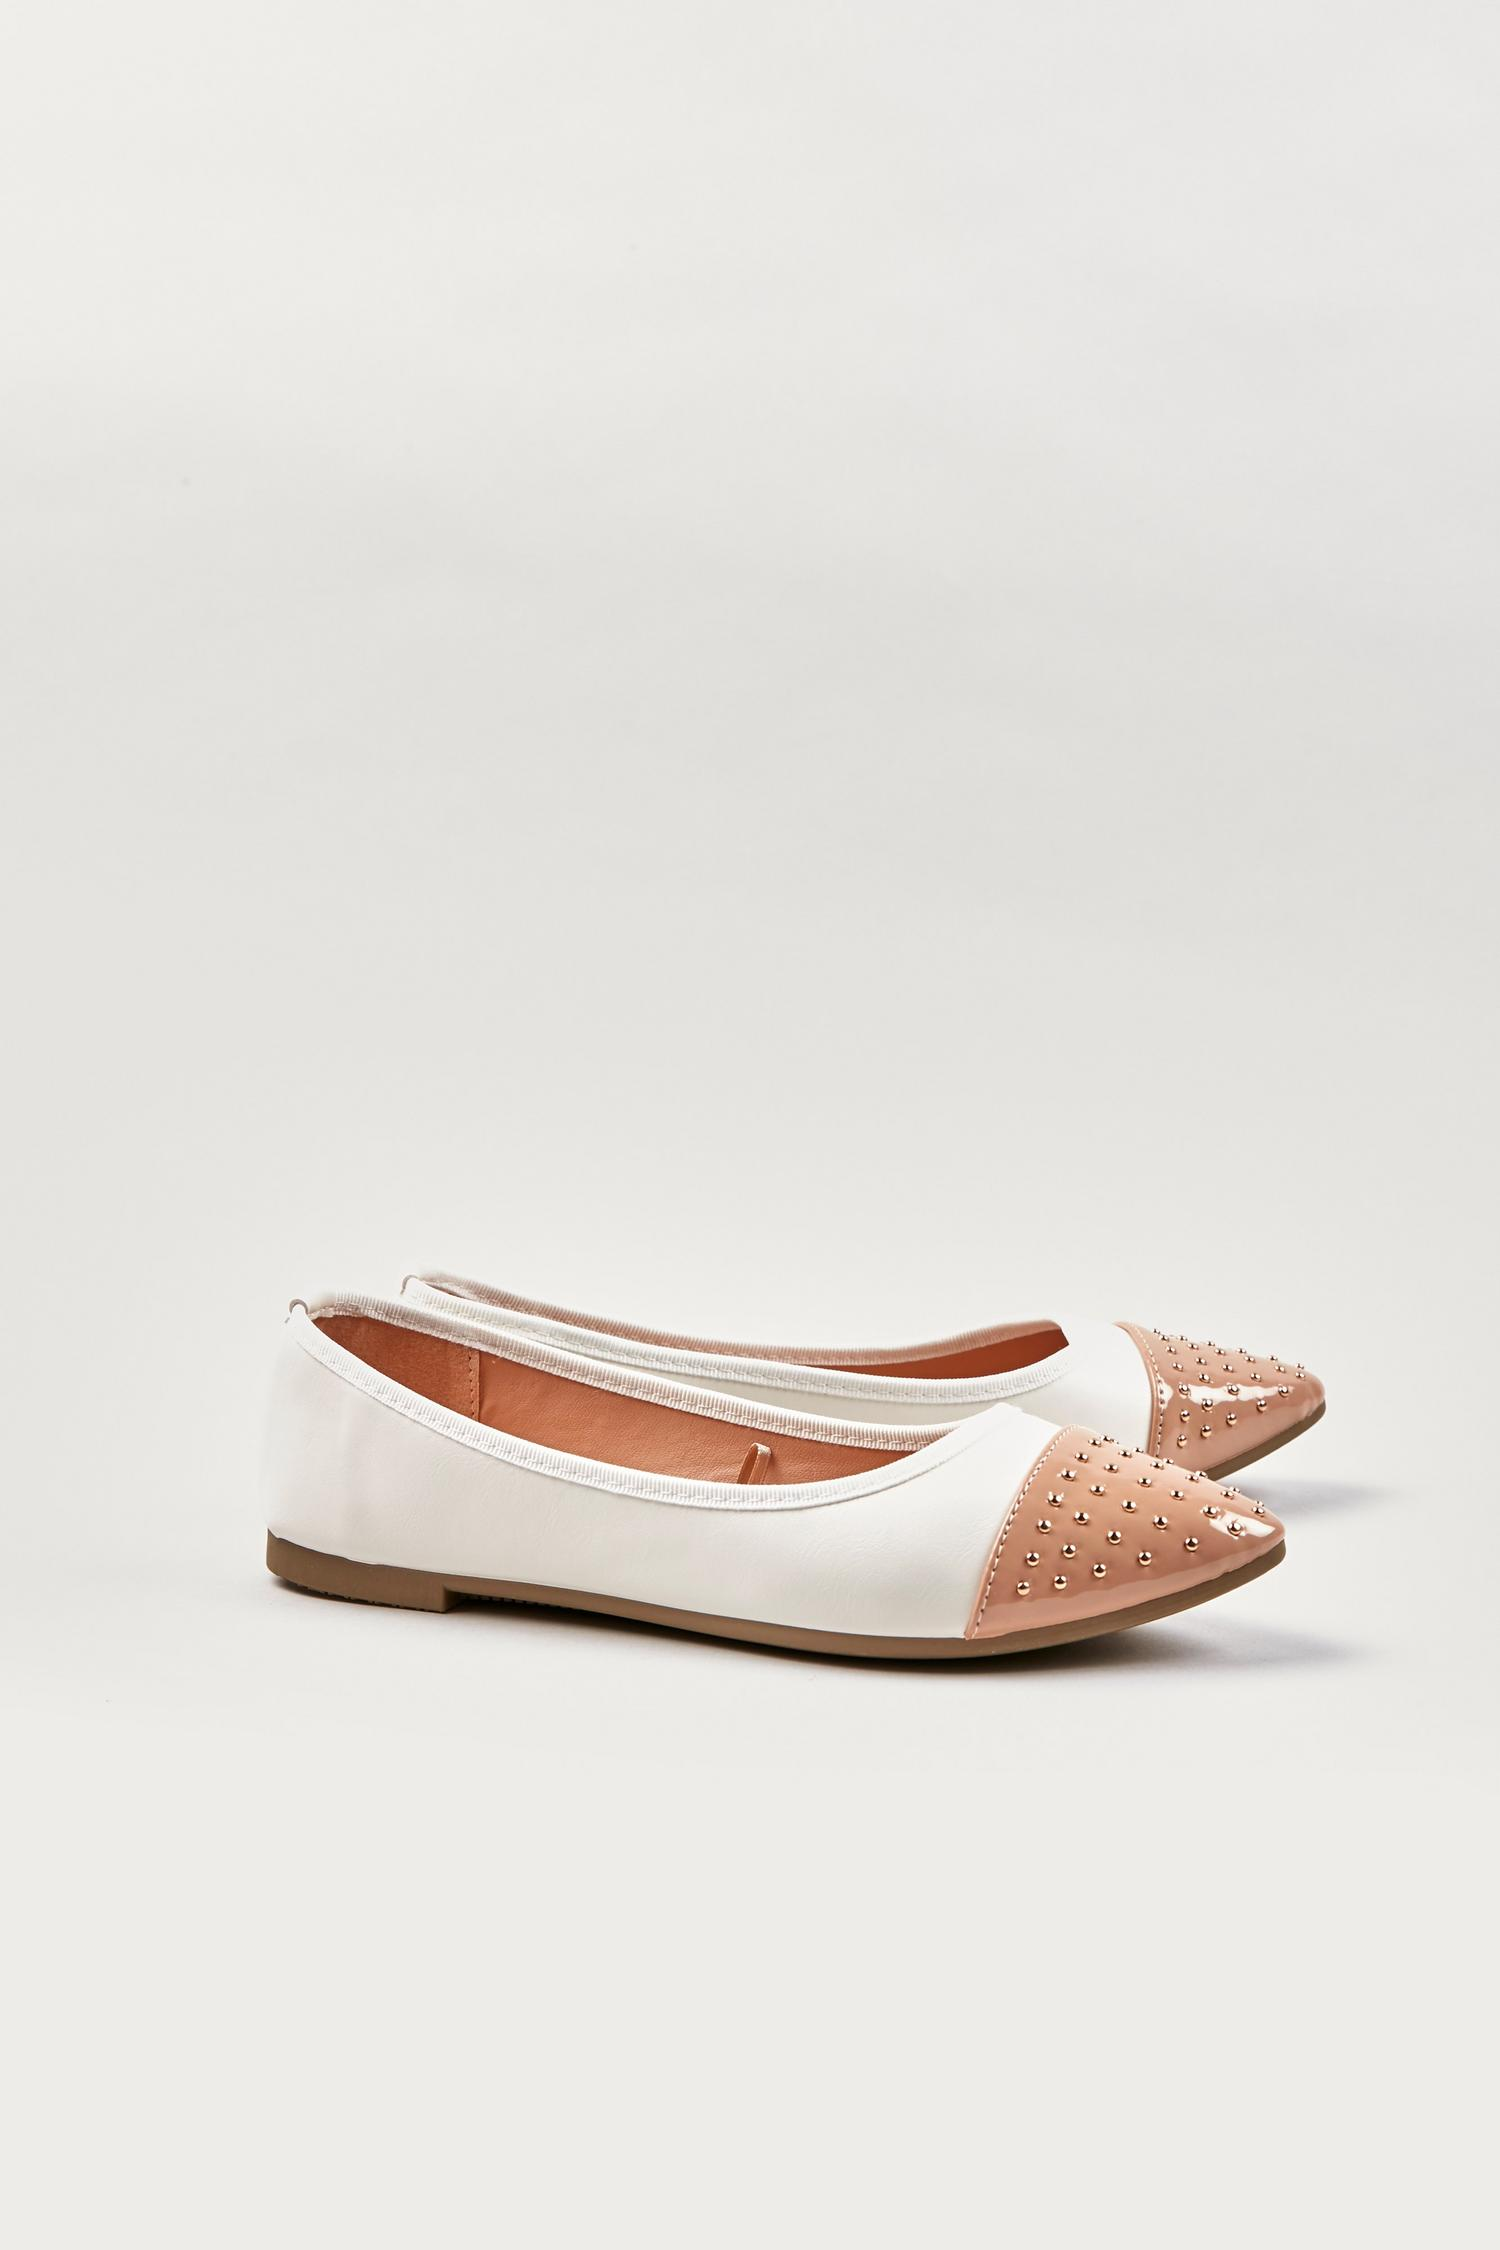 123 Cream Studded Pointed Ballet Pump image number 1